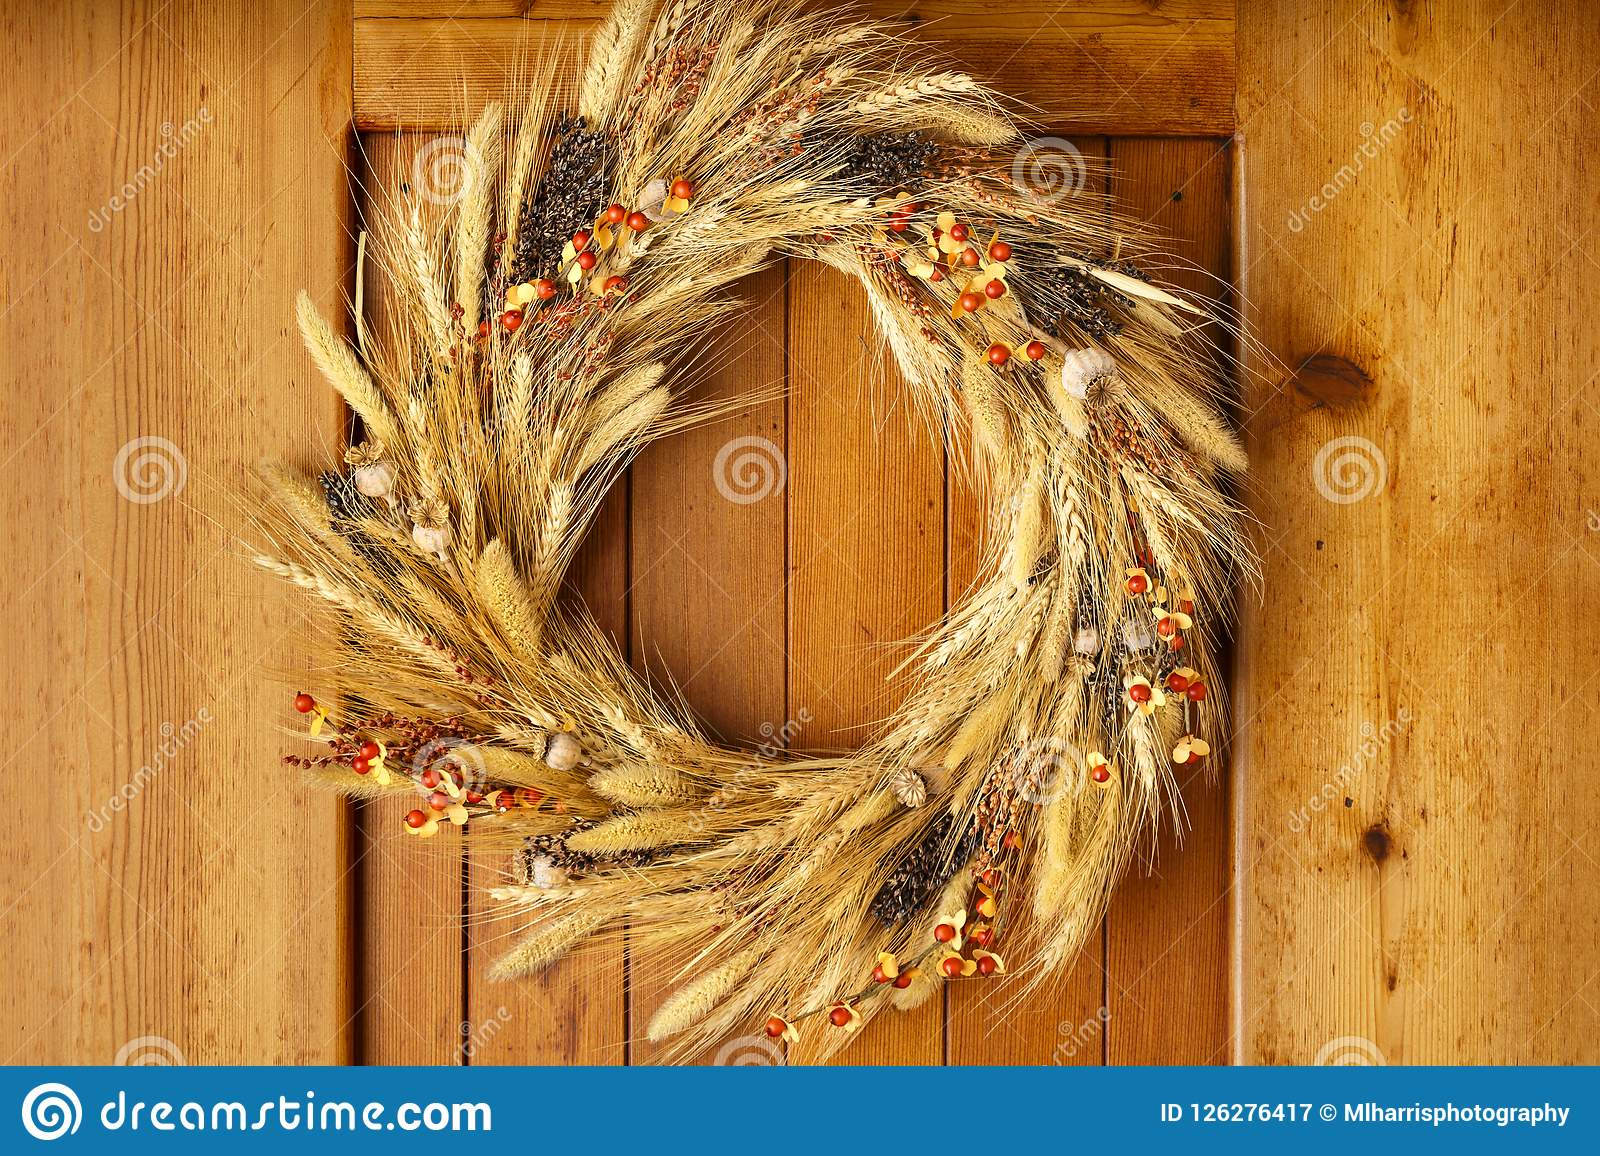 House home front door Fall autumn Thanksgiving decorations country style natural botanical rustic wreath on wood background